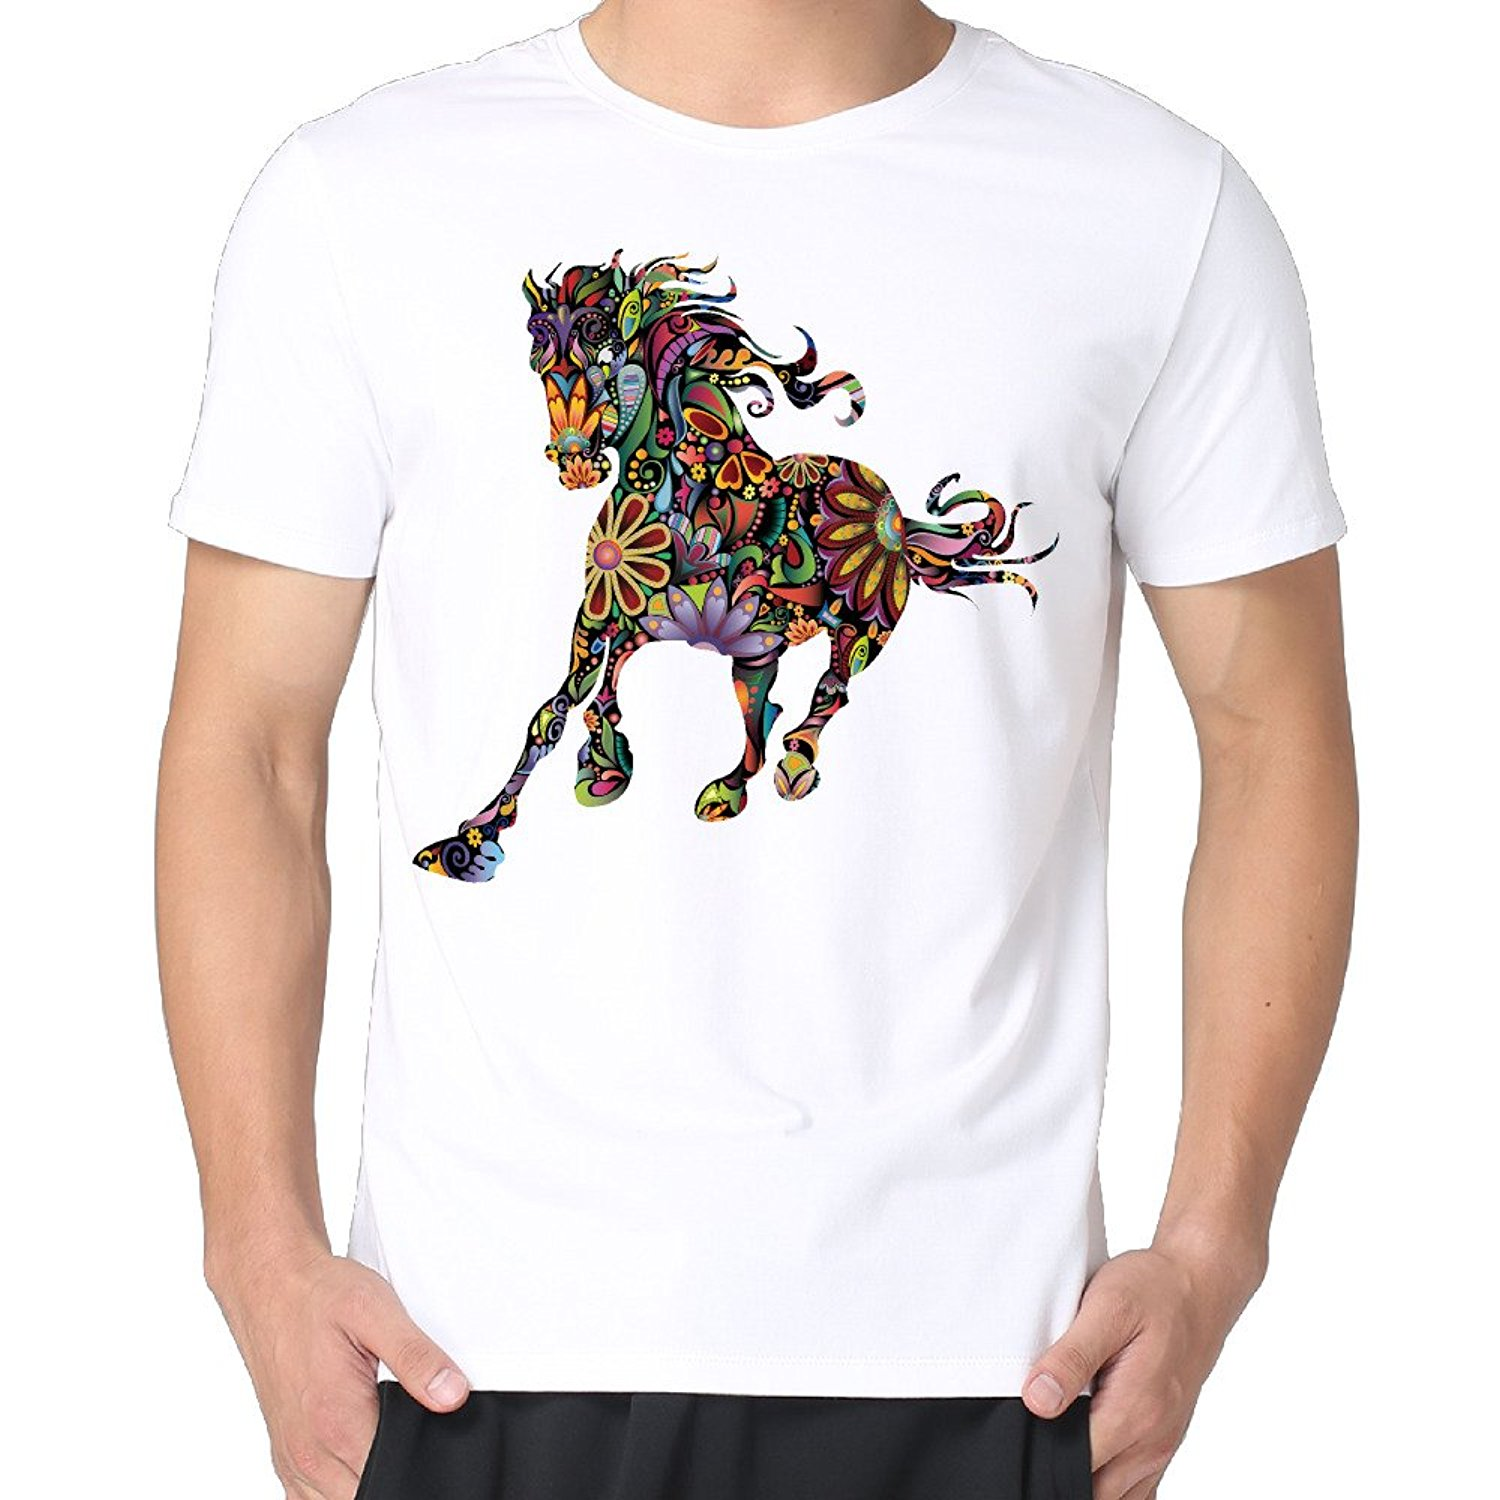 Design By Humans T Shirt Quality